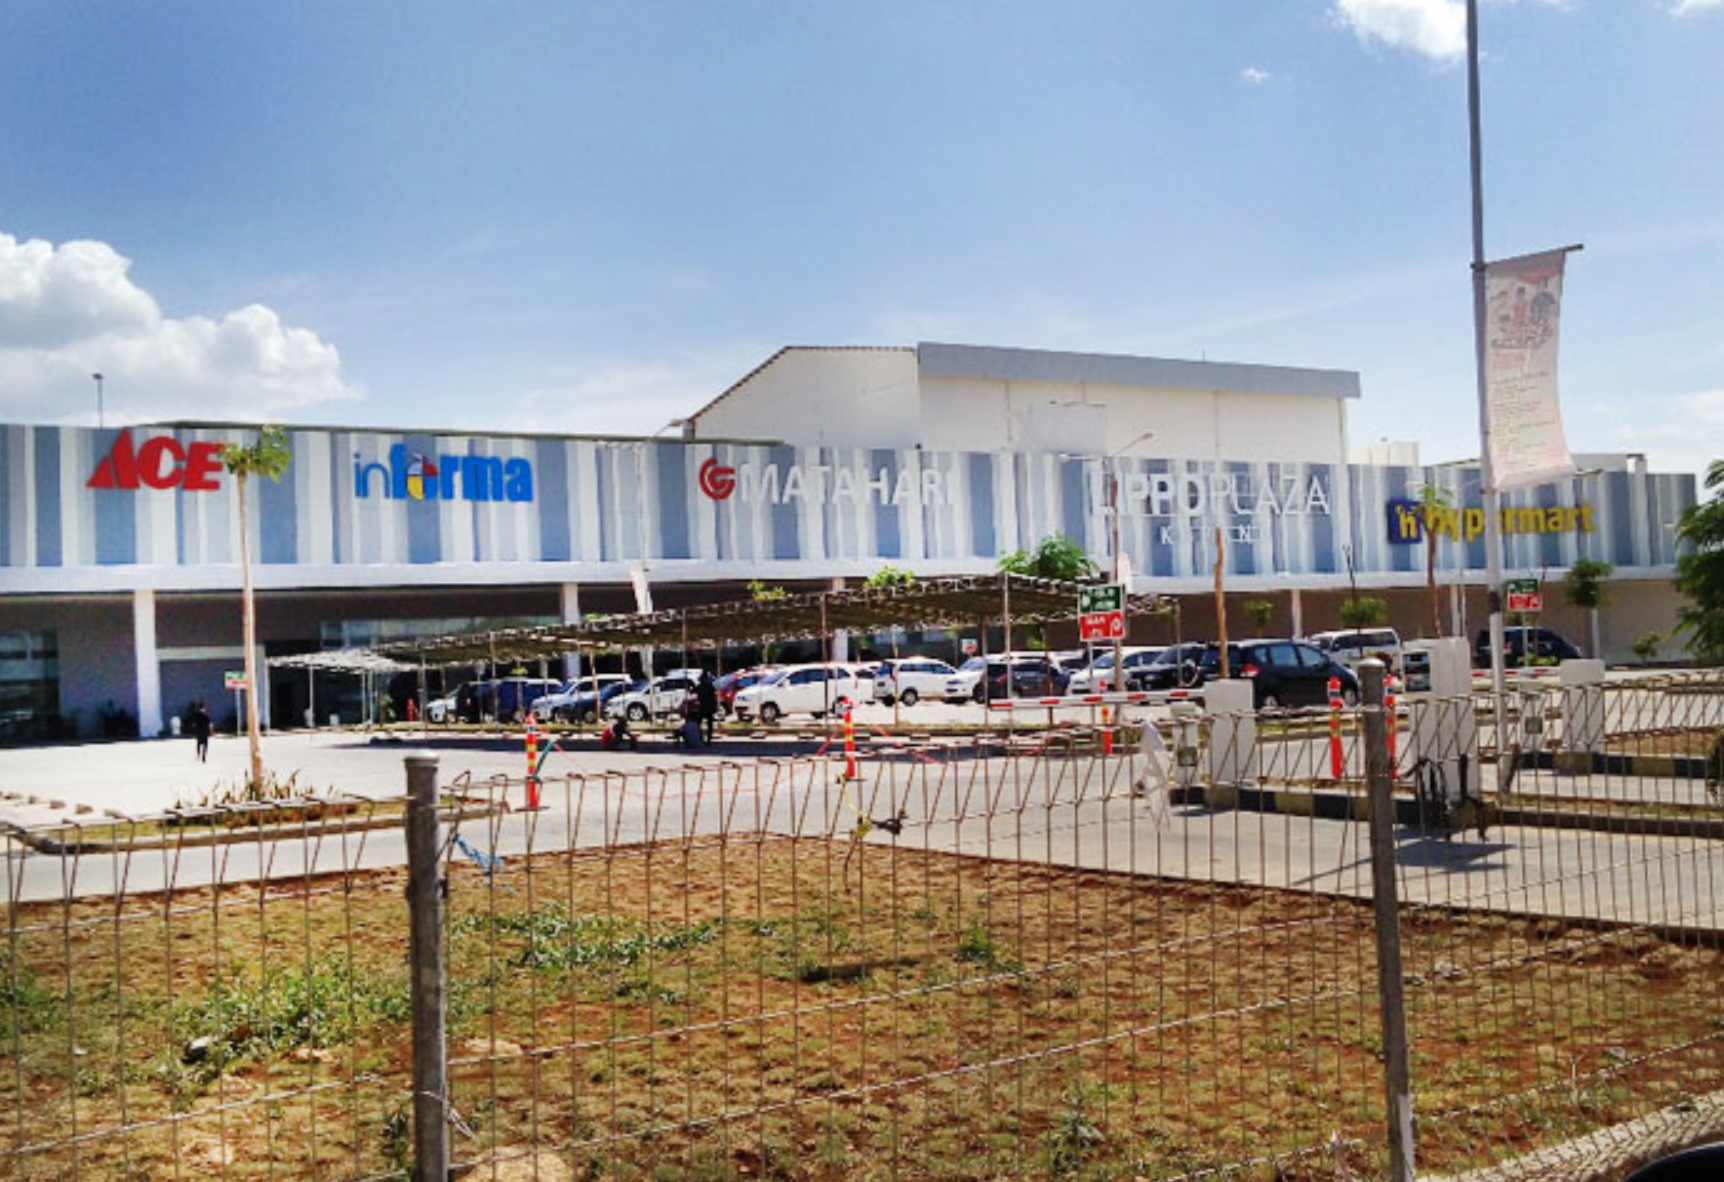 Siloam Hospitals Kupang & Lippo Plaza Kupang (Photo: First REIIT)